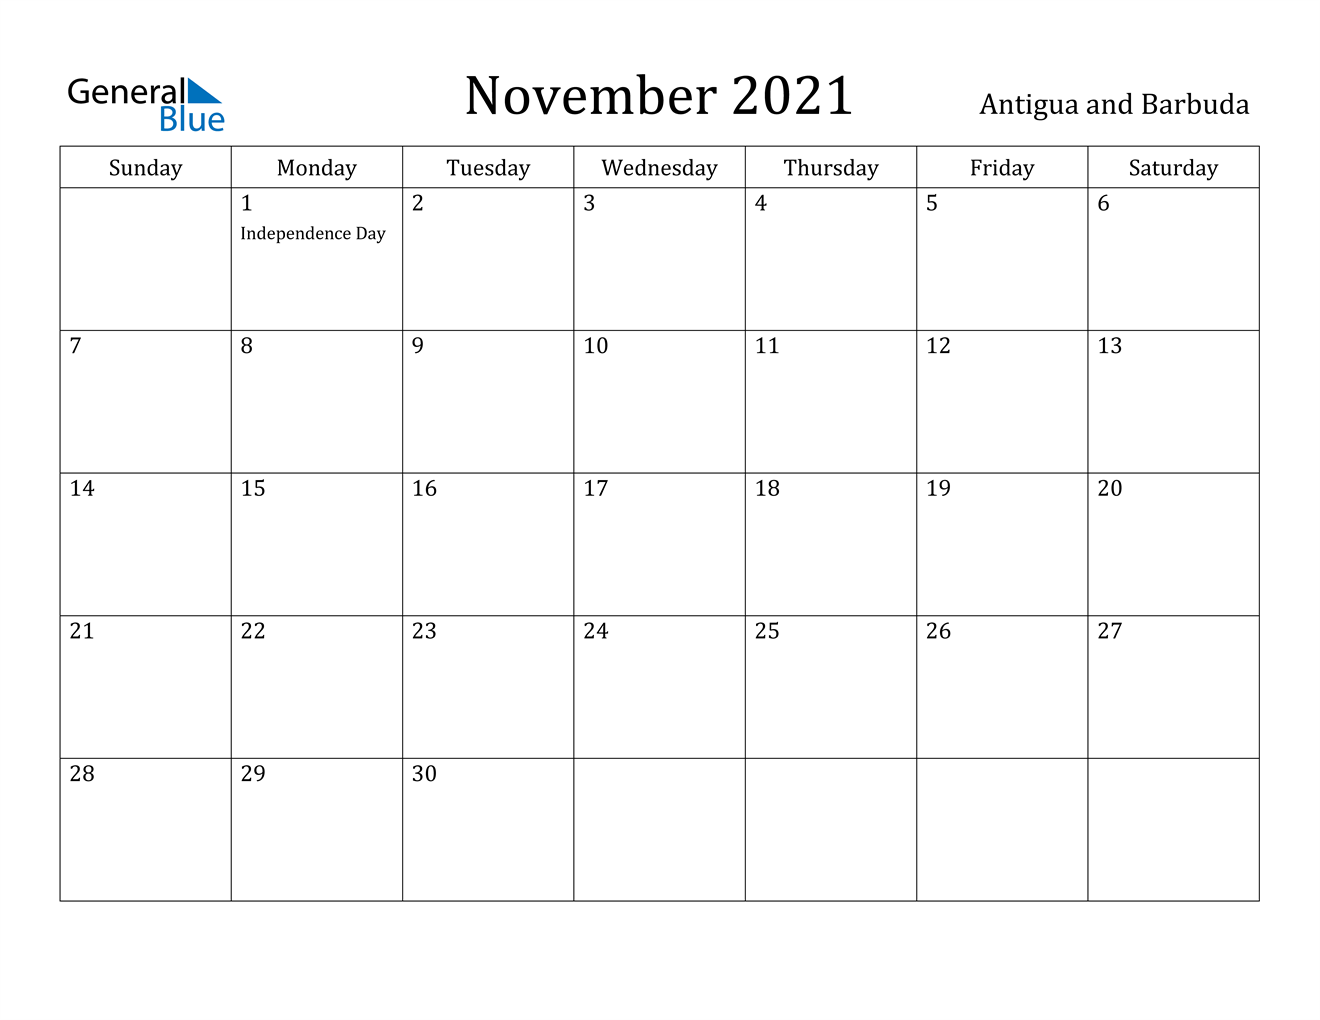 November 2021 Calendar - Antigua and Barbuda